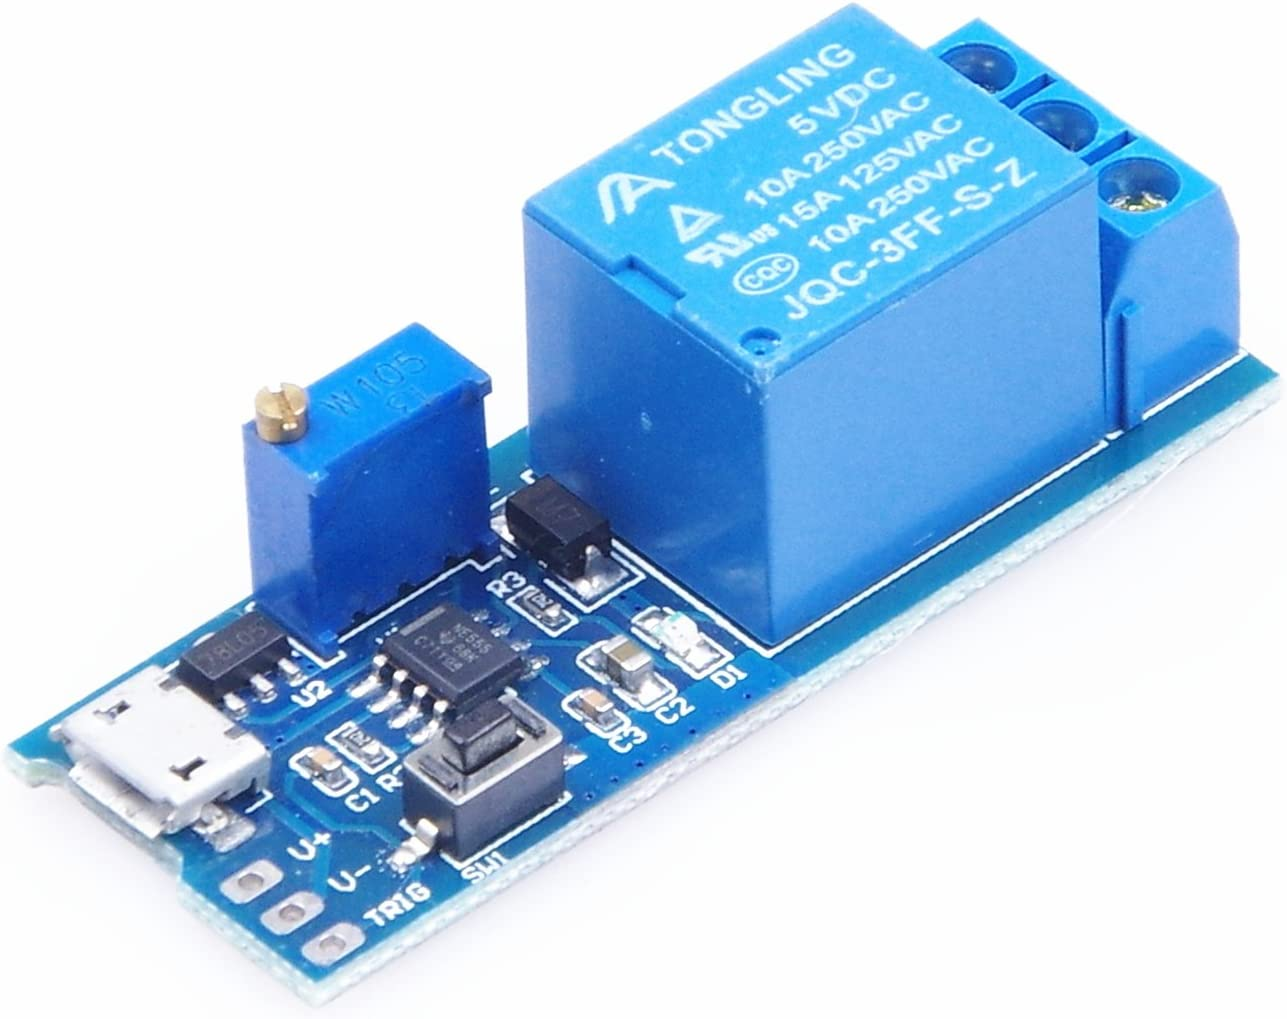 KNACRO 5V 6V 12V 24V 30C 5V-30V 1 Channel 10A Wilde Voltage 0-24s Adjustable Delay Internal/External Trigger Relay Board with Timer Delay Conduction Delay Circuit Switch